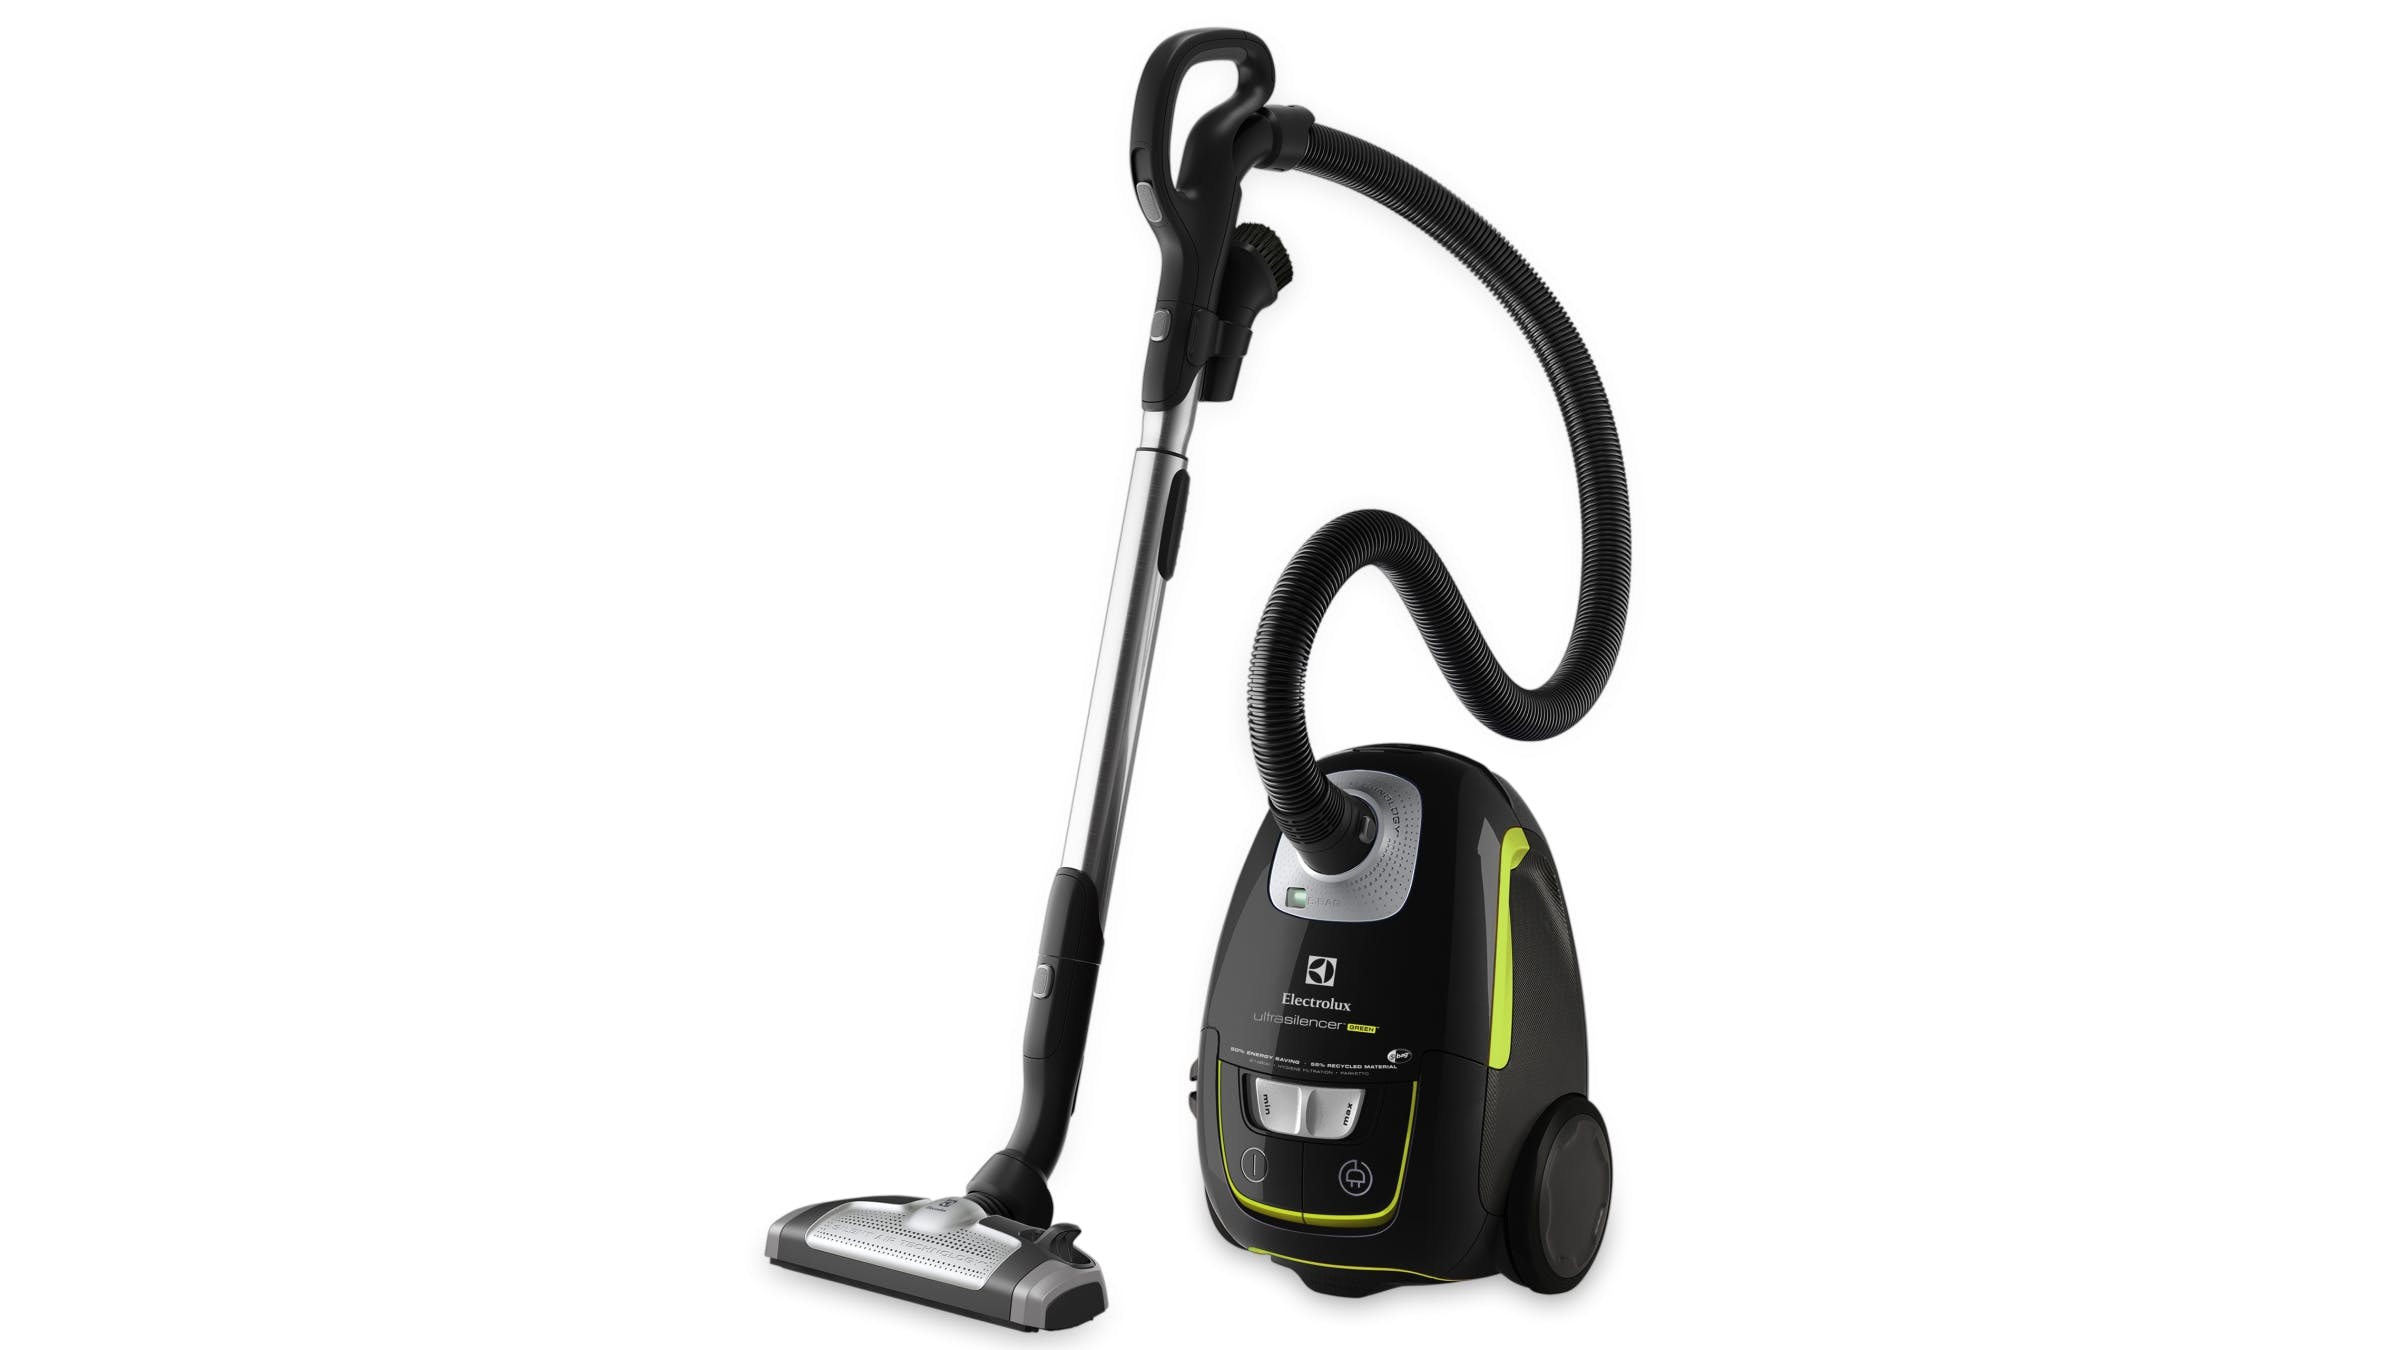 Electrolux ZUSG4061 UltraSilencer Green Vacuum Cleaner #1: ZUSG4061 fit=fill&bg=0FFF&w=2400&h=1350&auto=format press